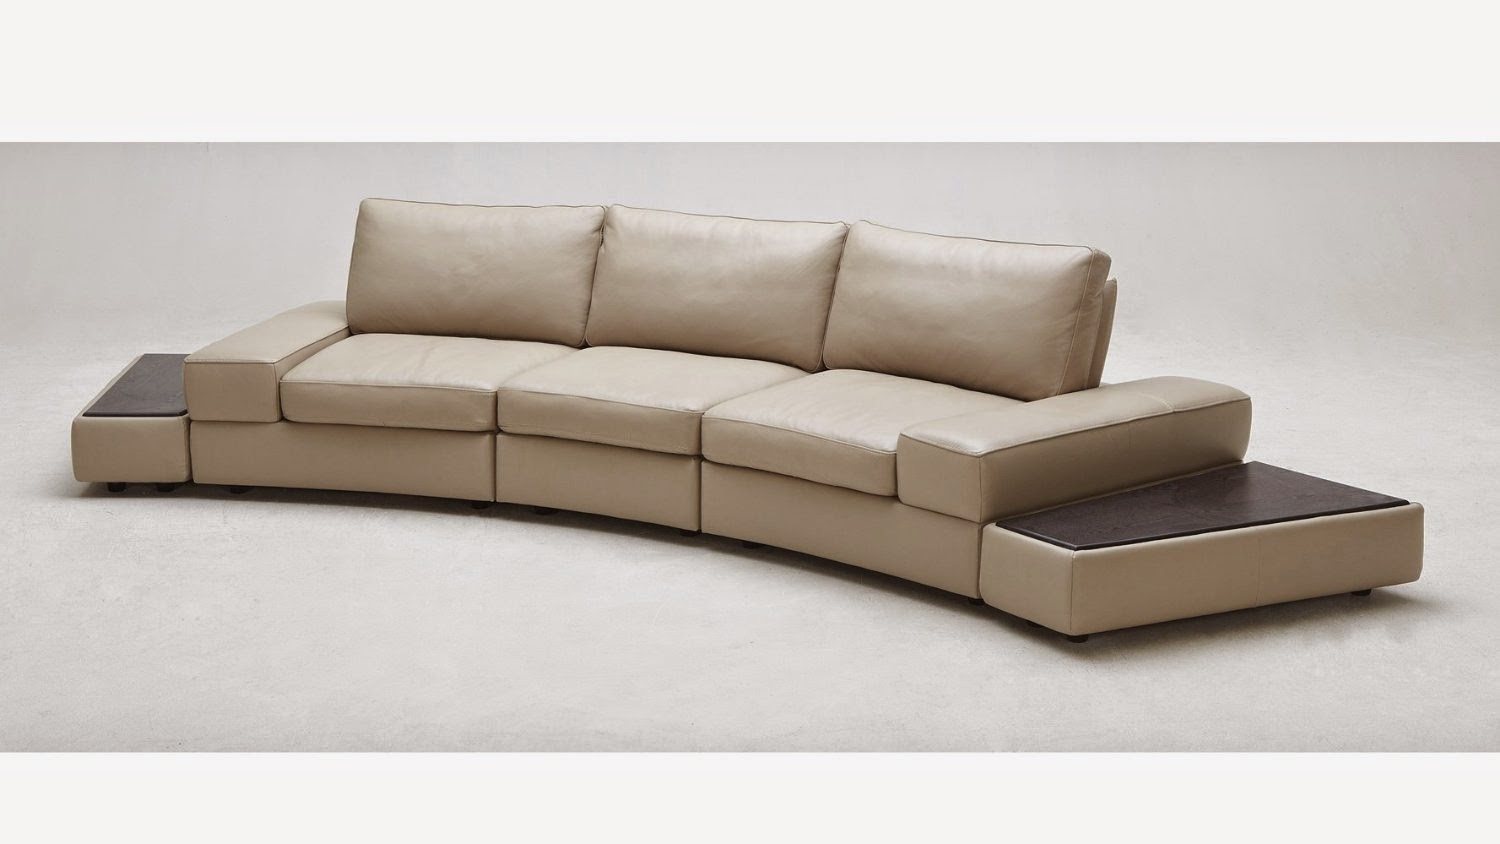 Modern Sofas Sectionals Grey Leather Sofa Furniture Village Curved Website Reviews Mid Century